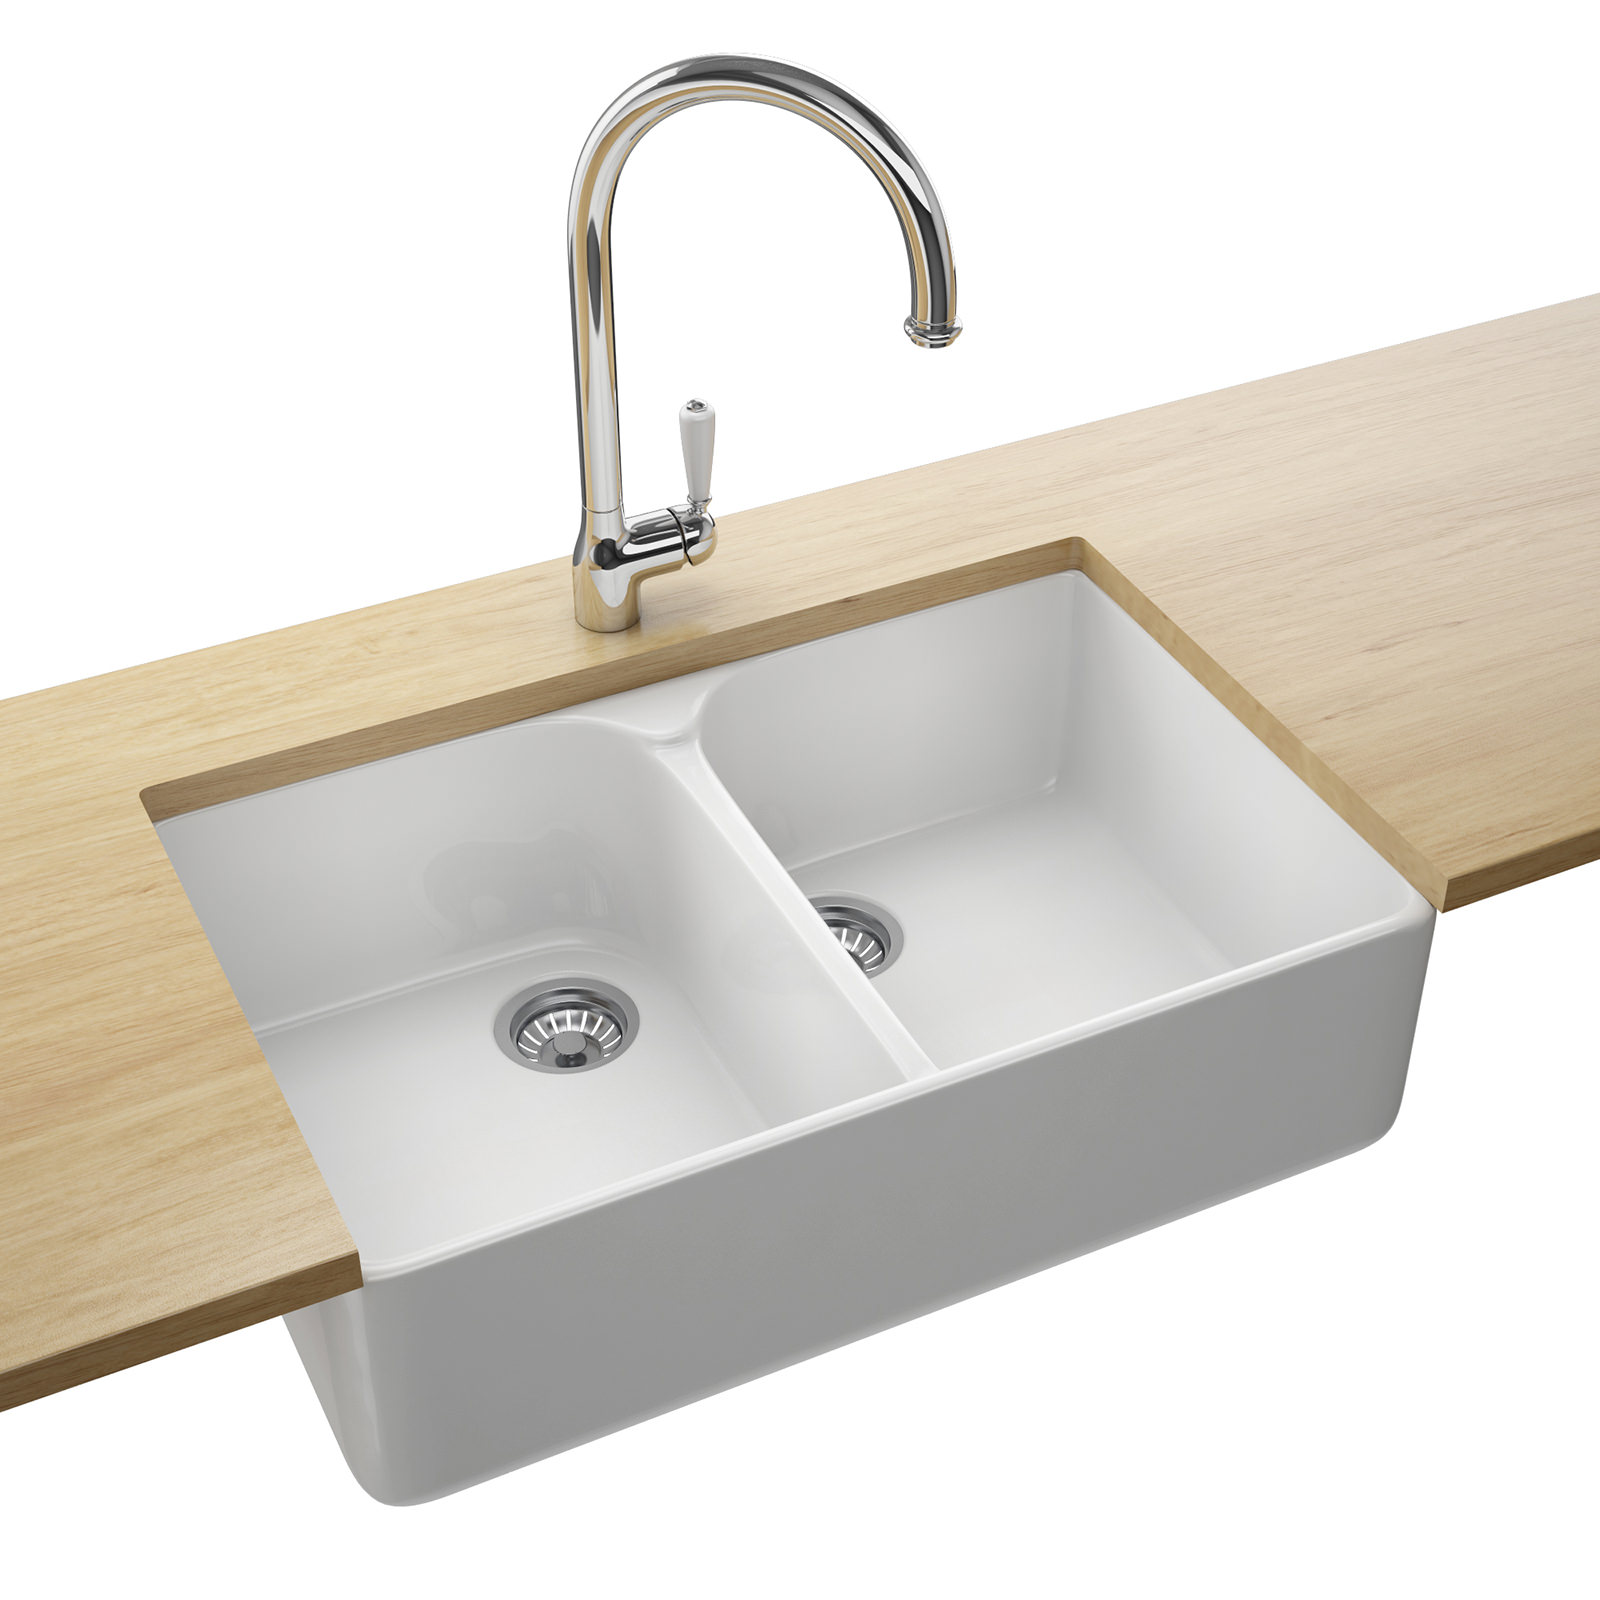 Sink bowl bathroom - Franke Belfast Vbk 720 Ceramic White 2 0 Bowl Kitchen Sink